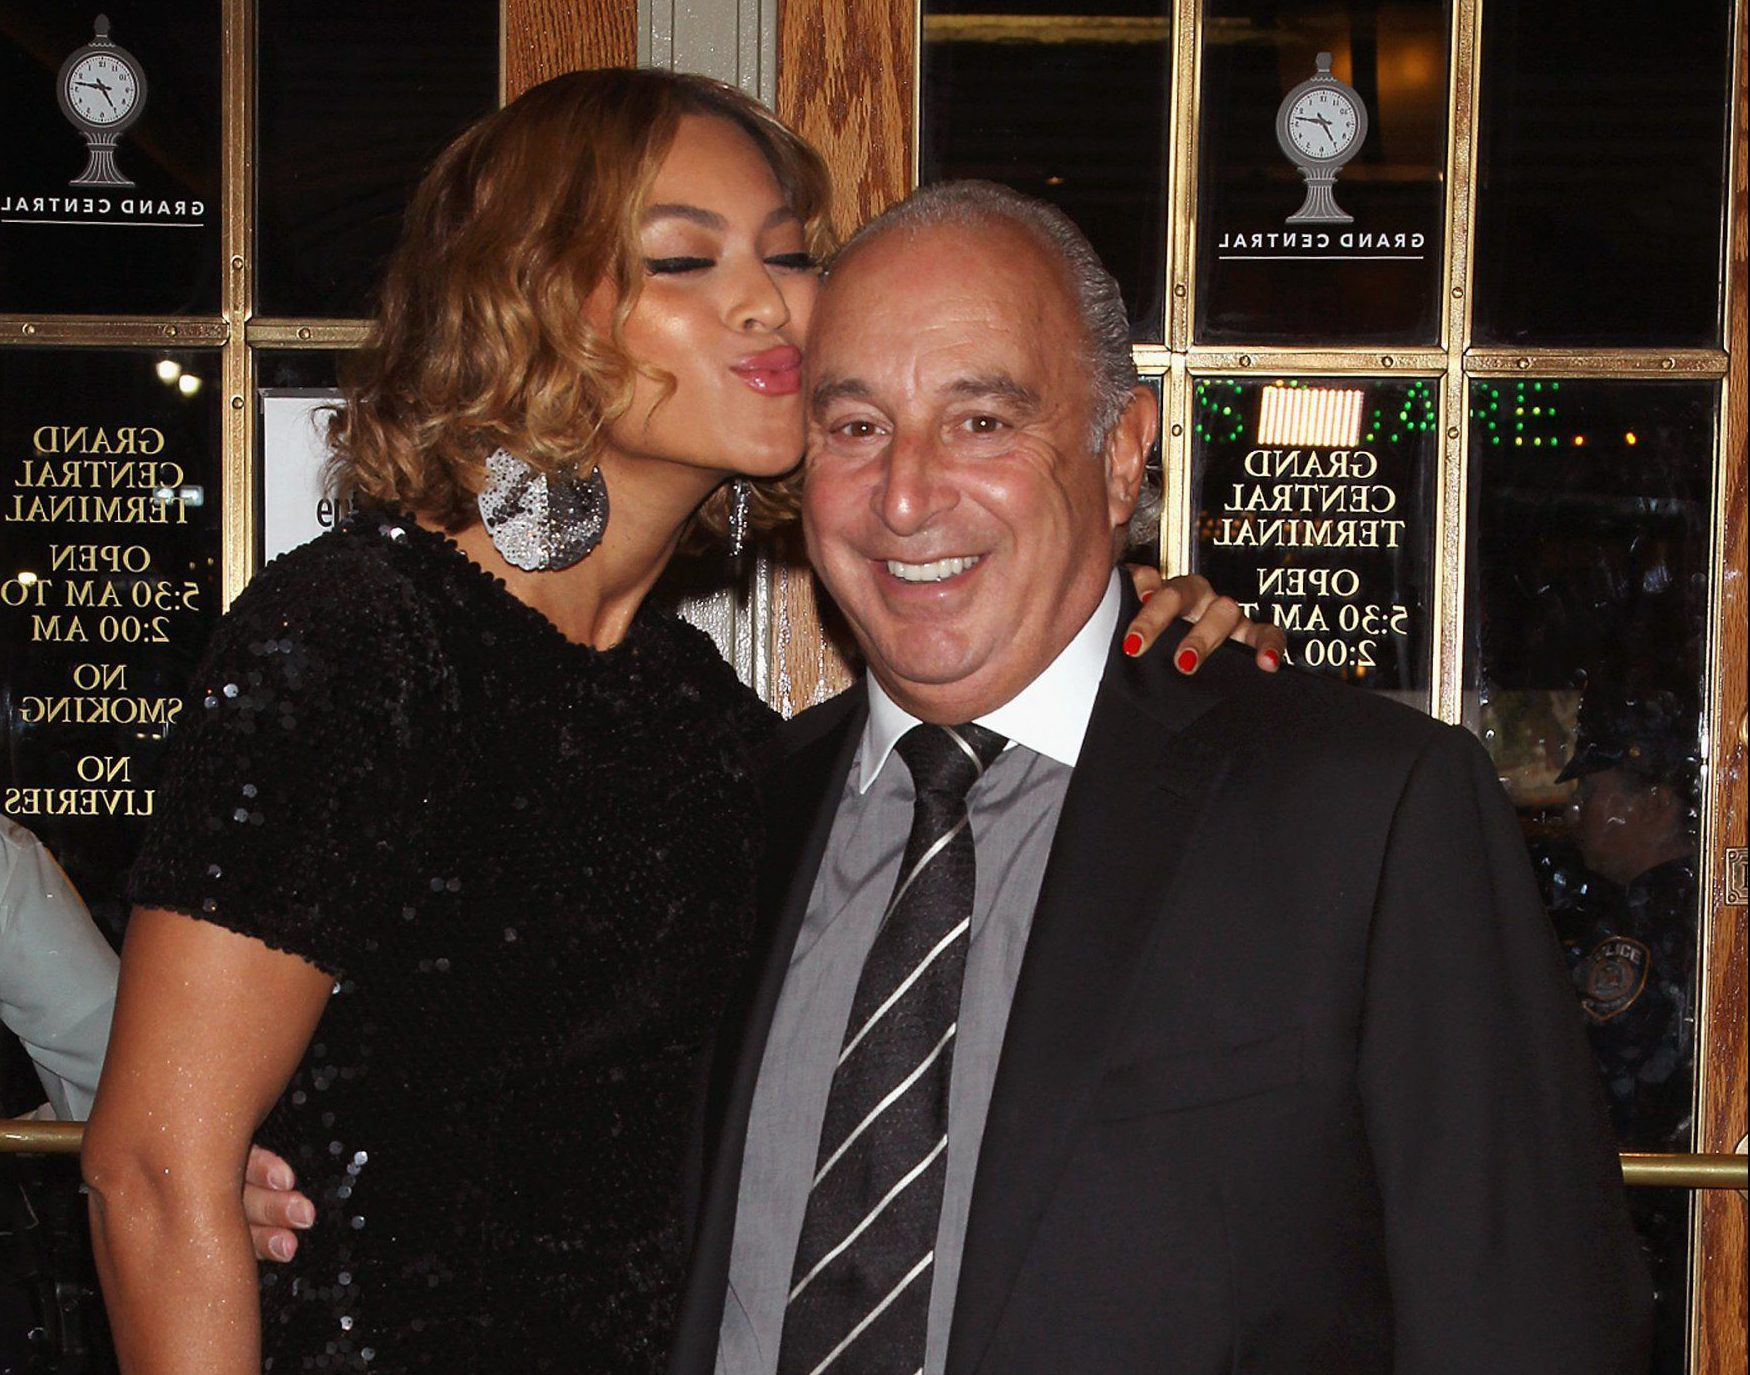 Beyonce put under pressure to cut ties with Sir Philip Green who 'racially and sexually abused staff'